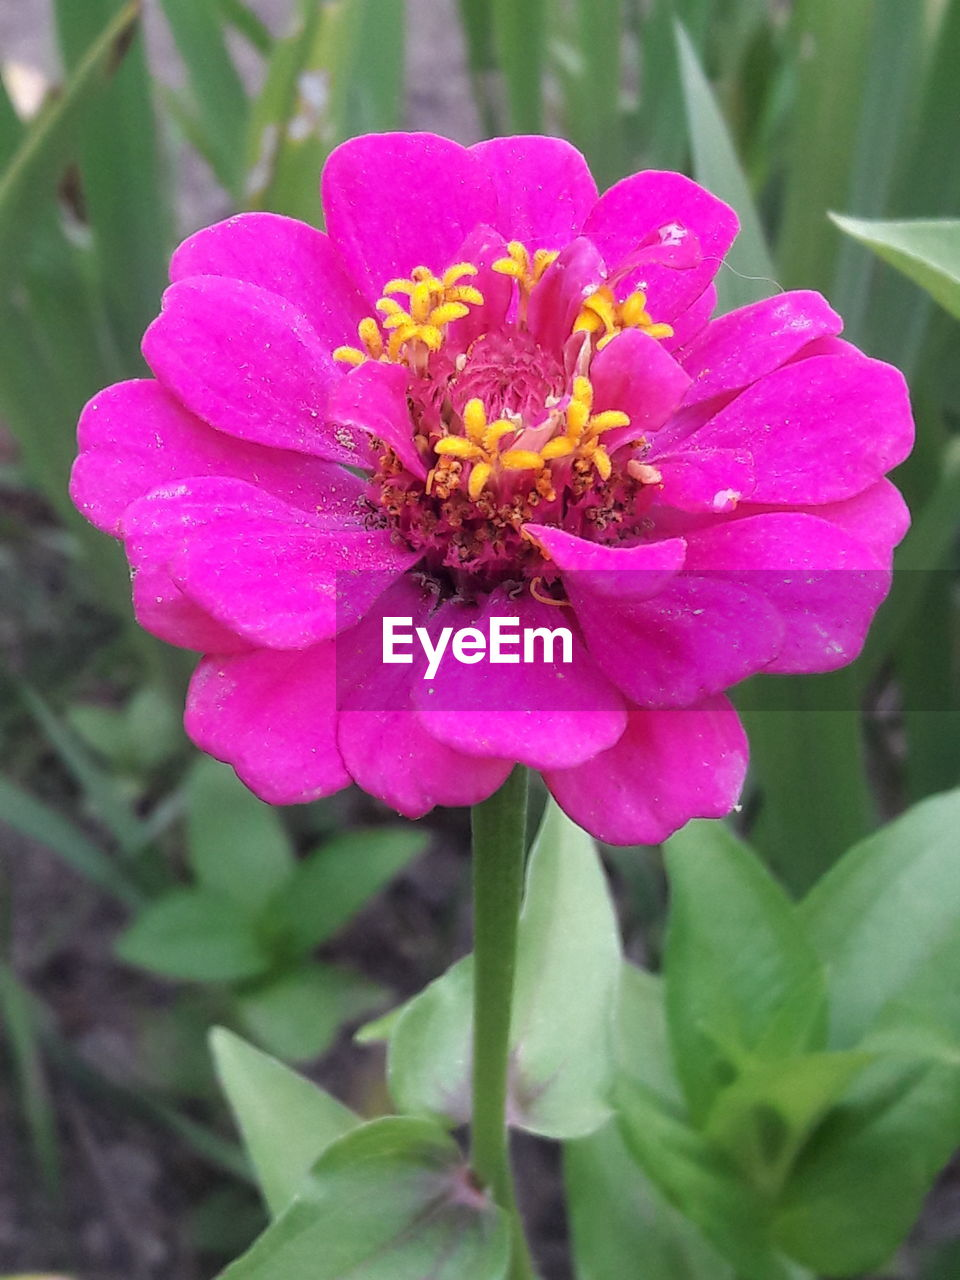 flower, petal, fragility, beauty in nature, nature, flower head, freshness, growth, plant, blooming, outdoors, day, no people, focus on foreground, close-up, pink color, zinnia, animal themes